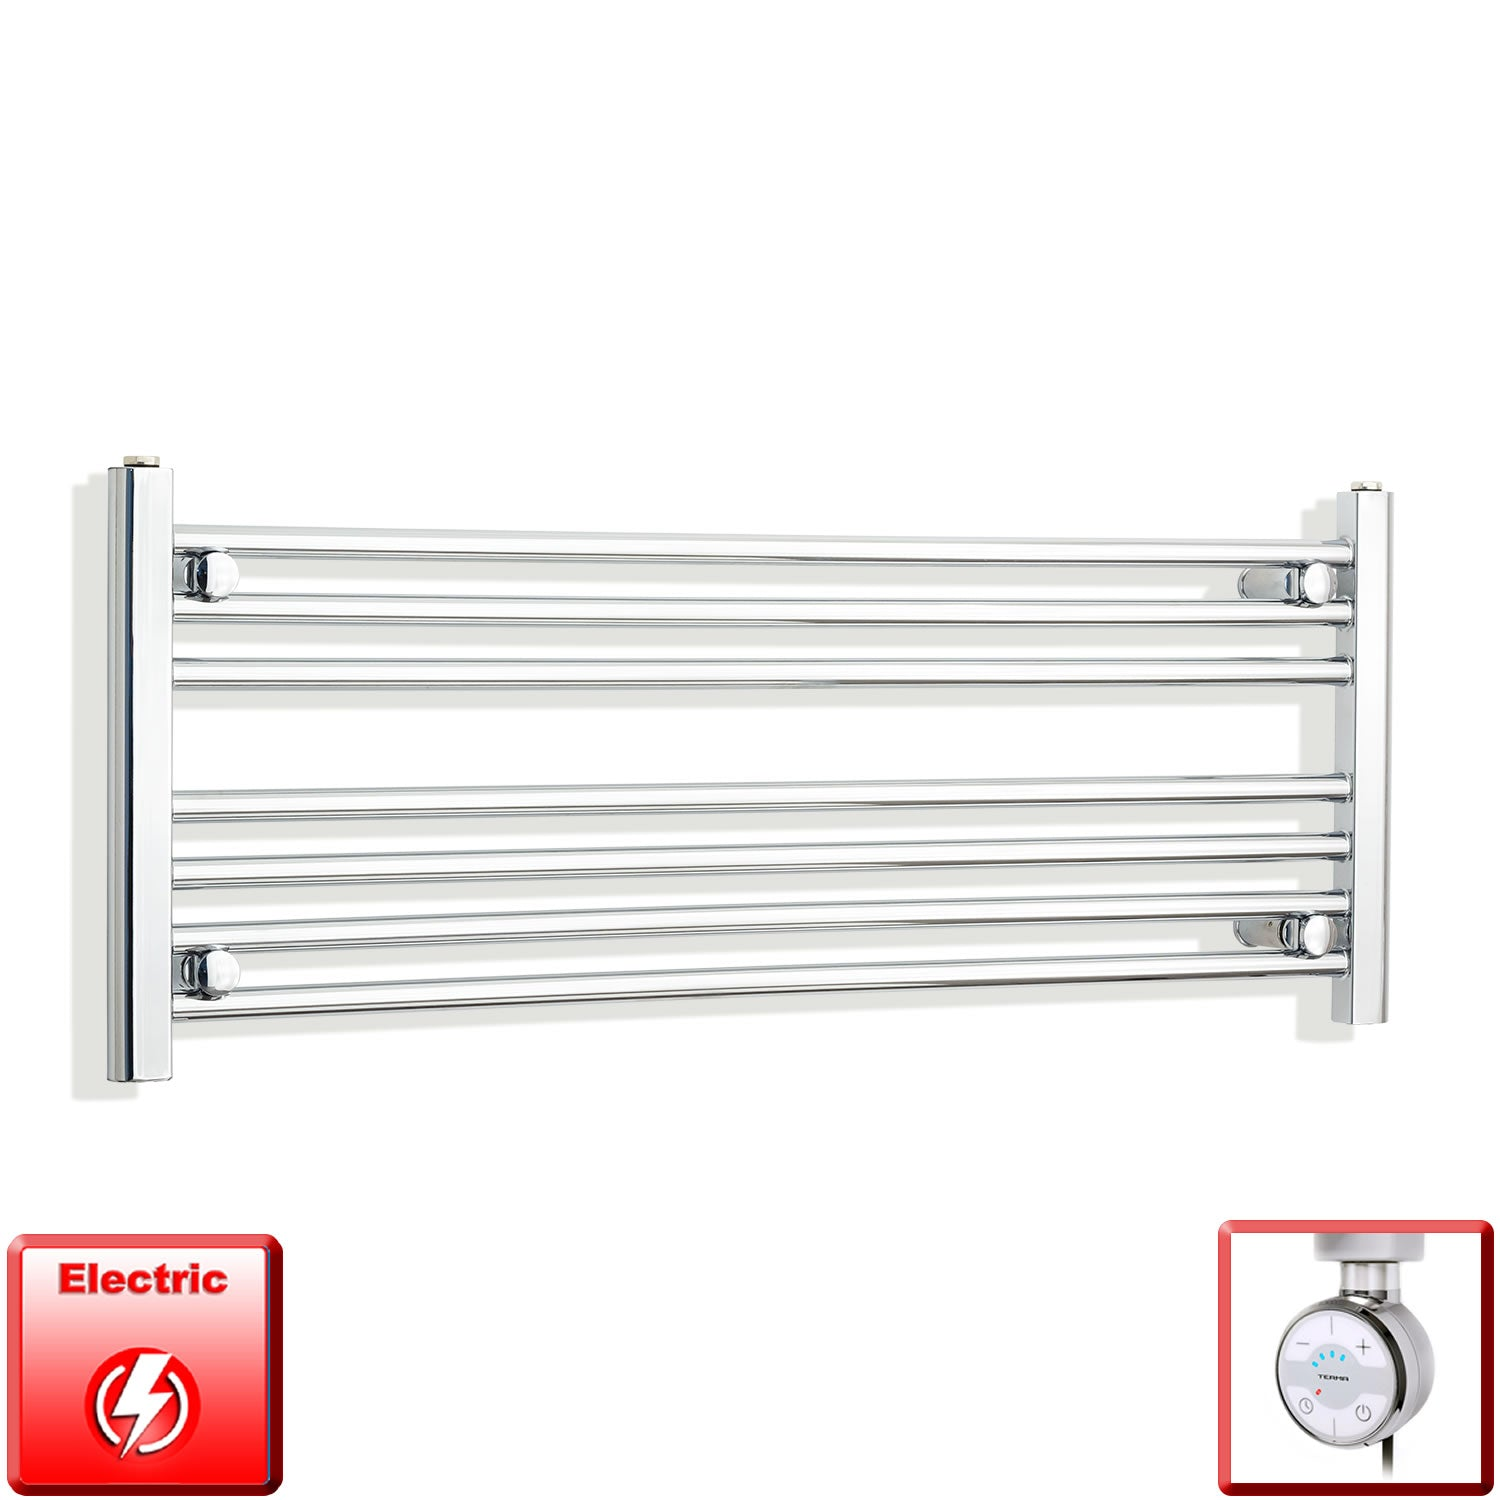 1300mm Wide 400mm High Pre-Filled Chrome Electric Towel Rail Radiator With Thermostatic MOA Element